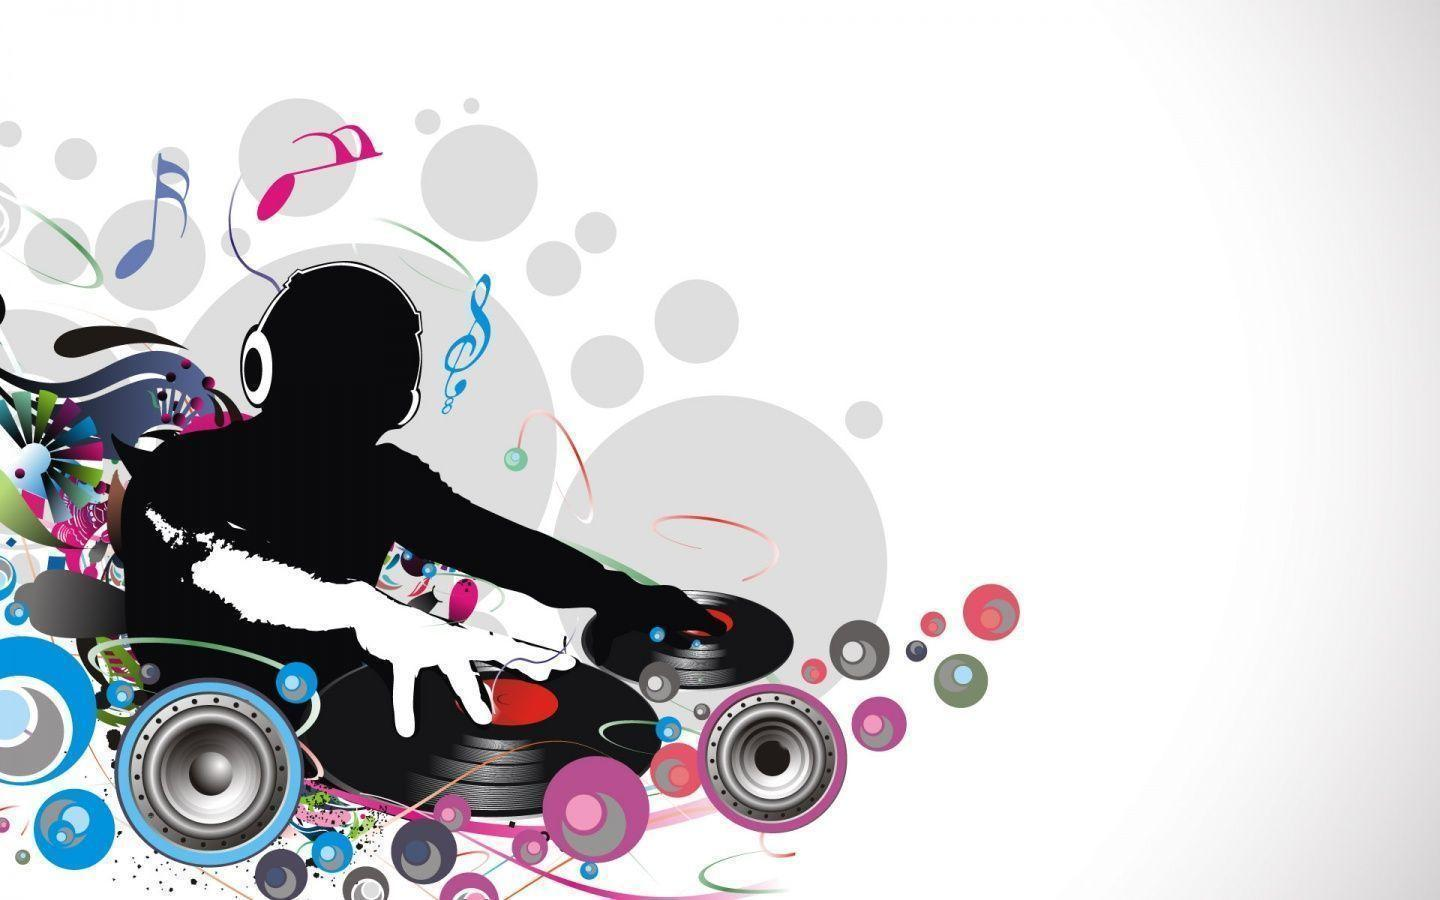 Wallpapers For > Cool Dj Wallpapers Hd